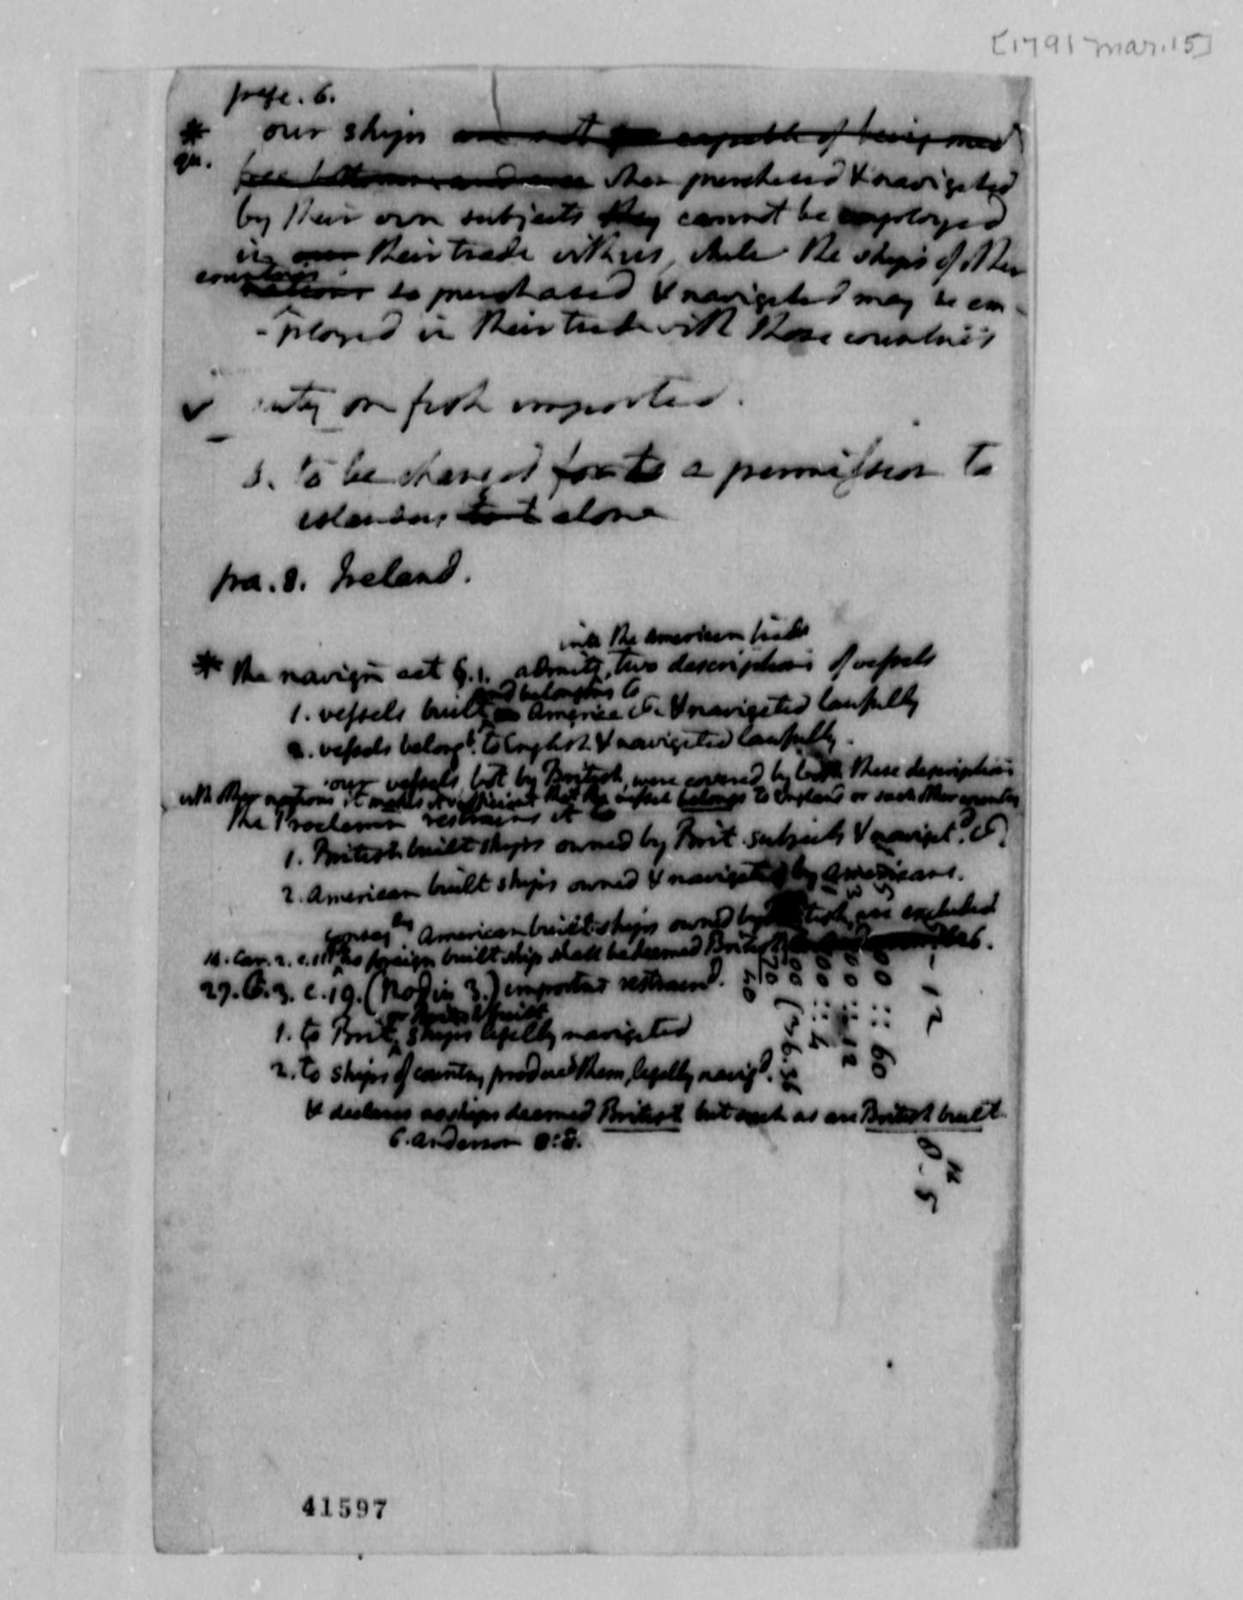 Thomas Jefferson to U. S. House of Representatives, March 15, 1791, Notes